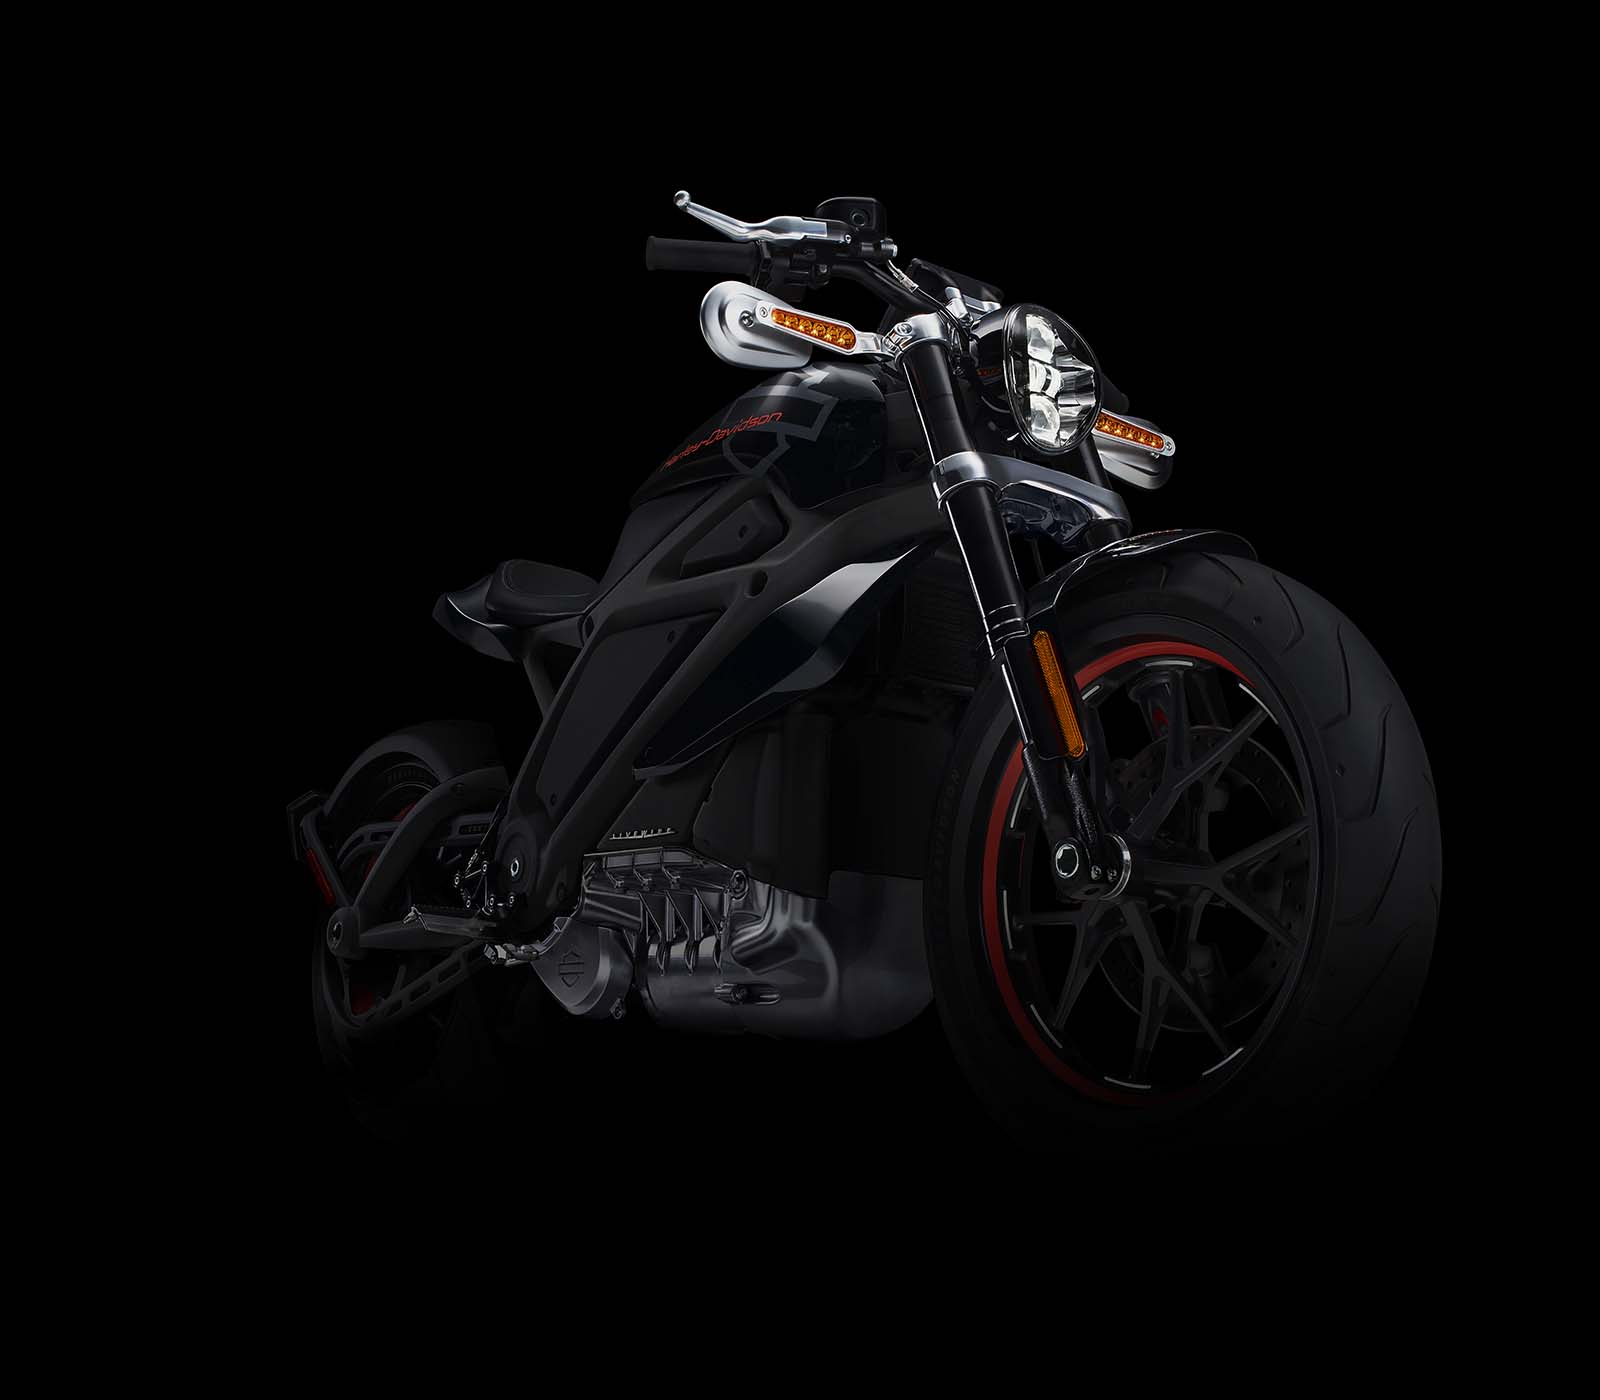 Leaked: First Photos Of The Harley-Davidson Livewire